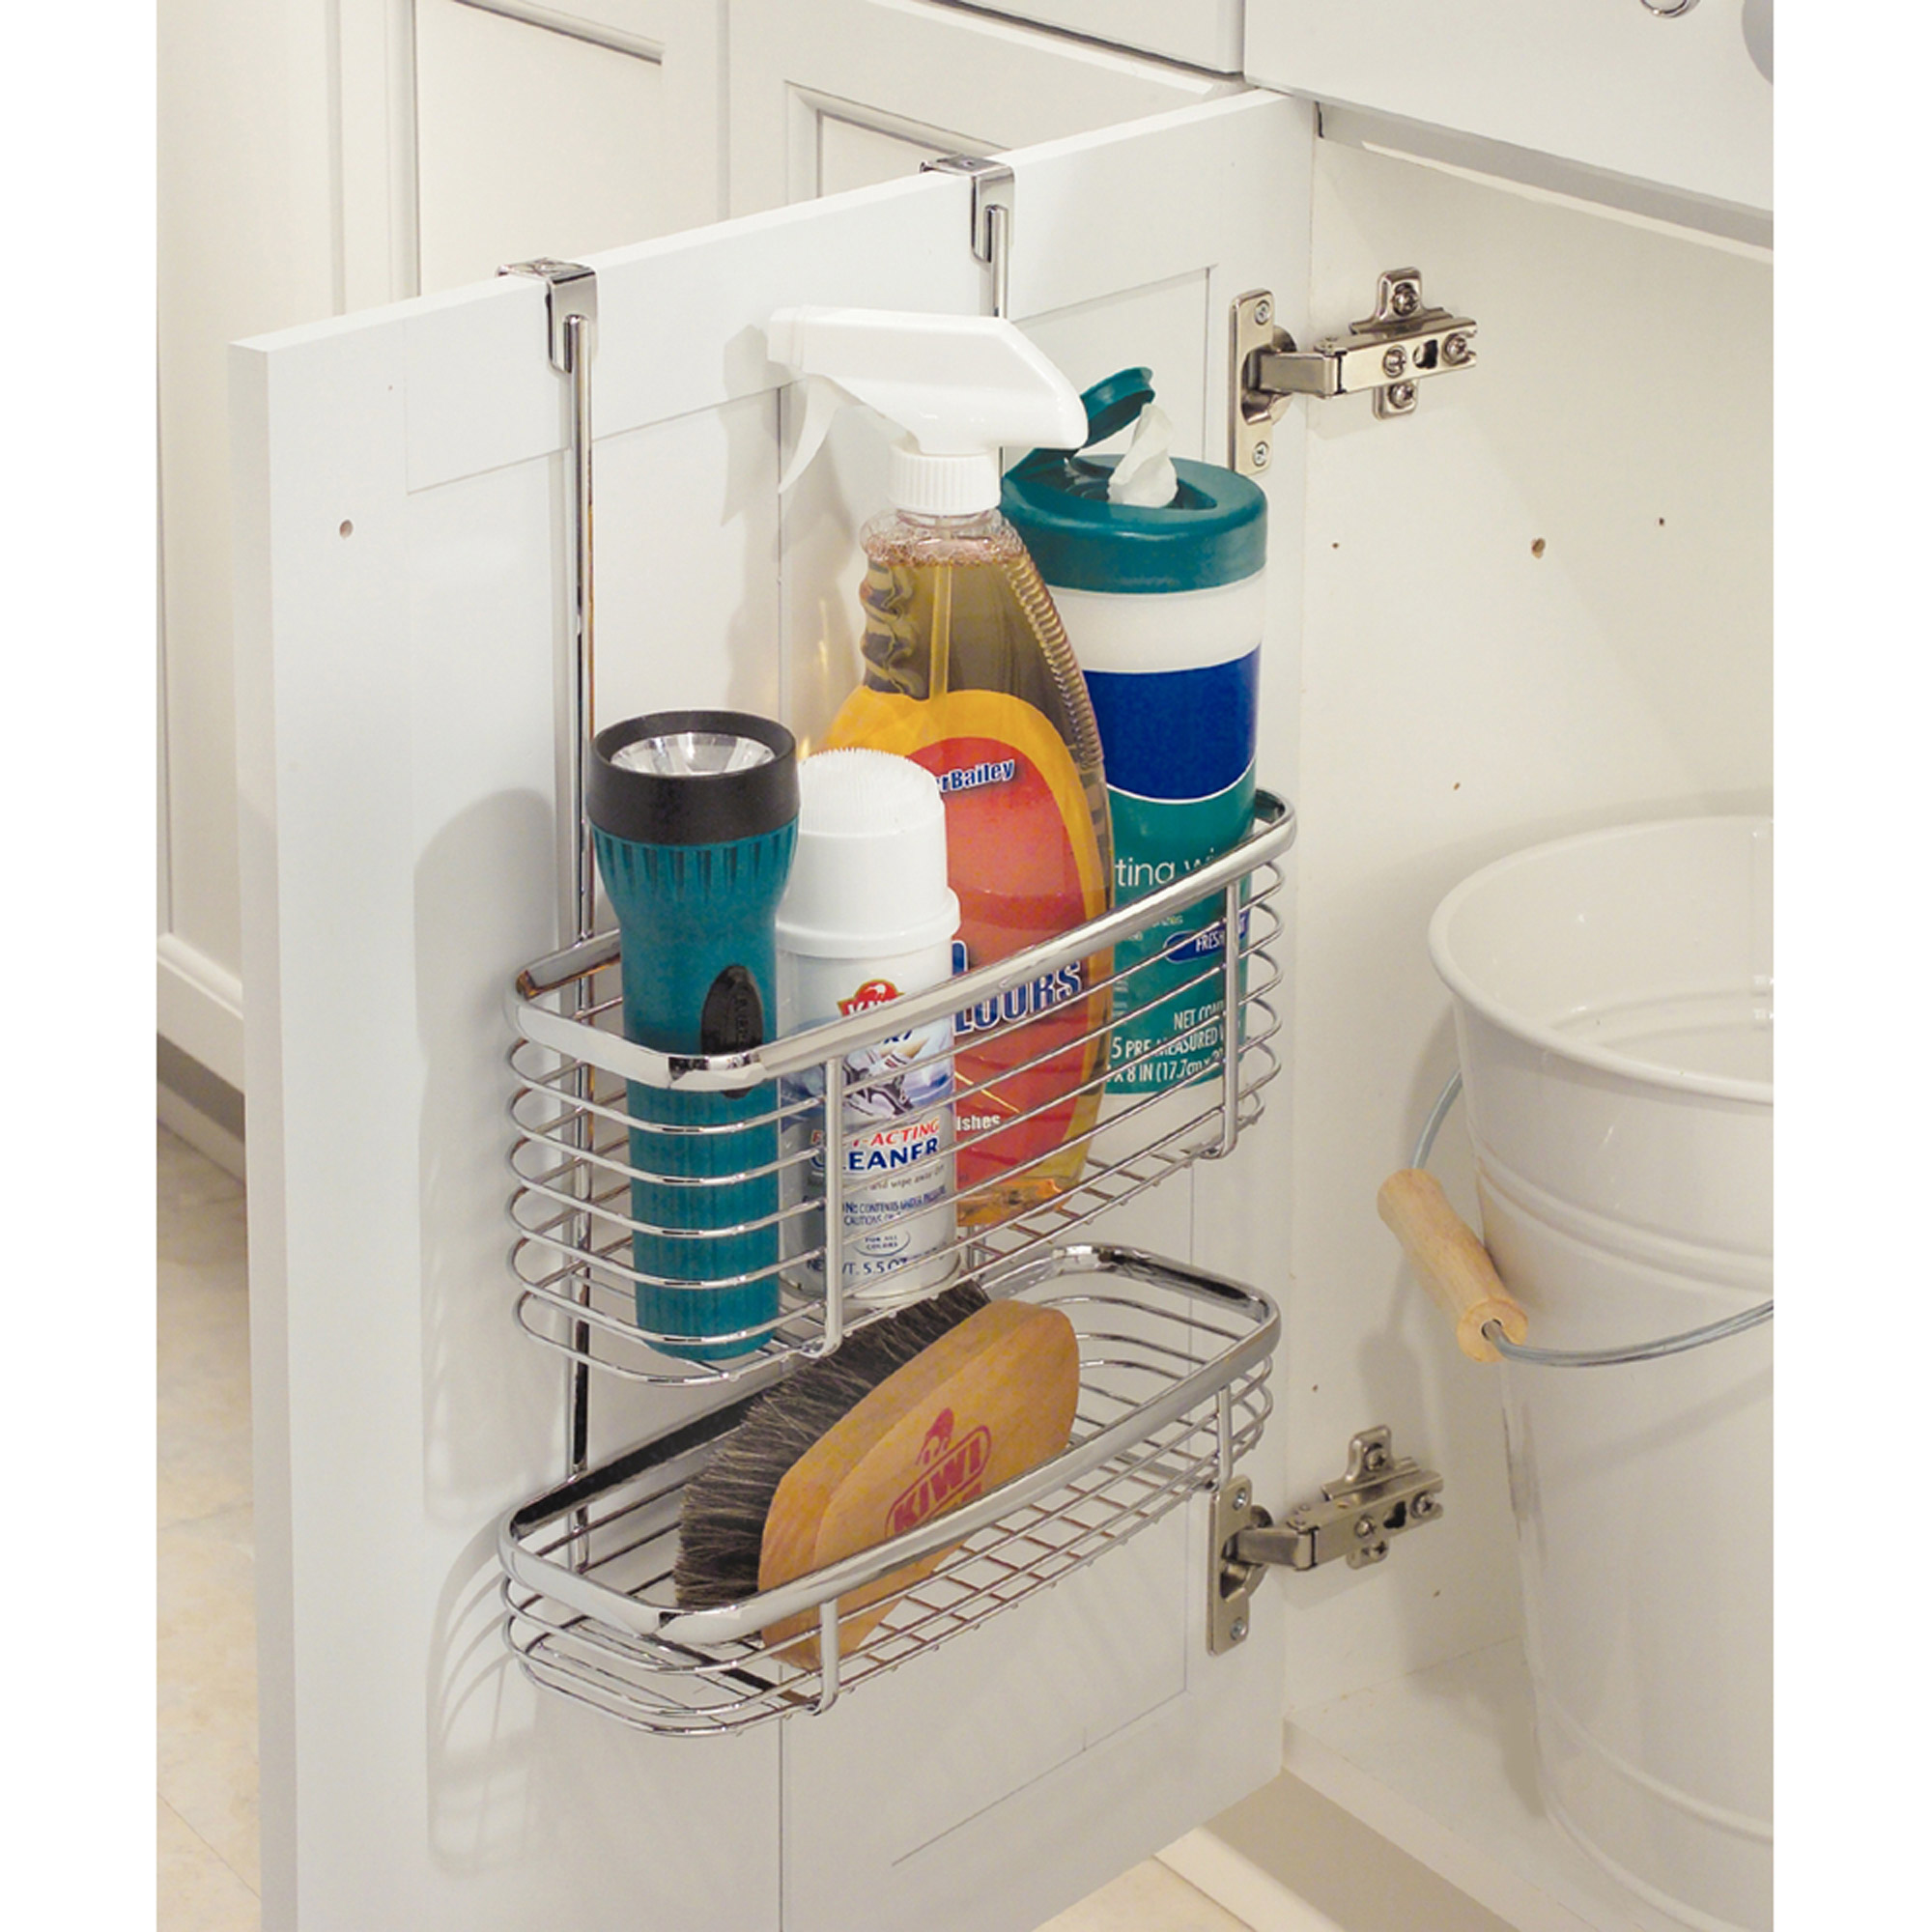 InterDesign Axis Over-the-Cabinet X3 Basket